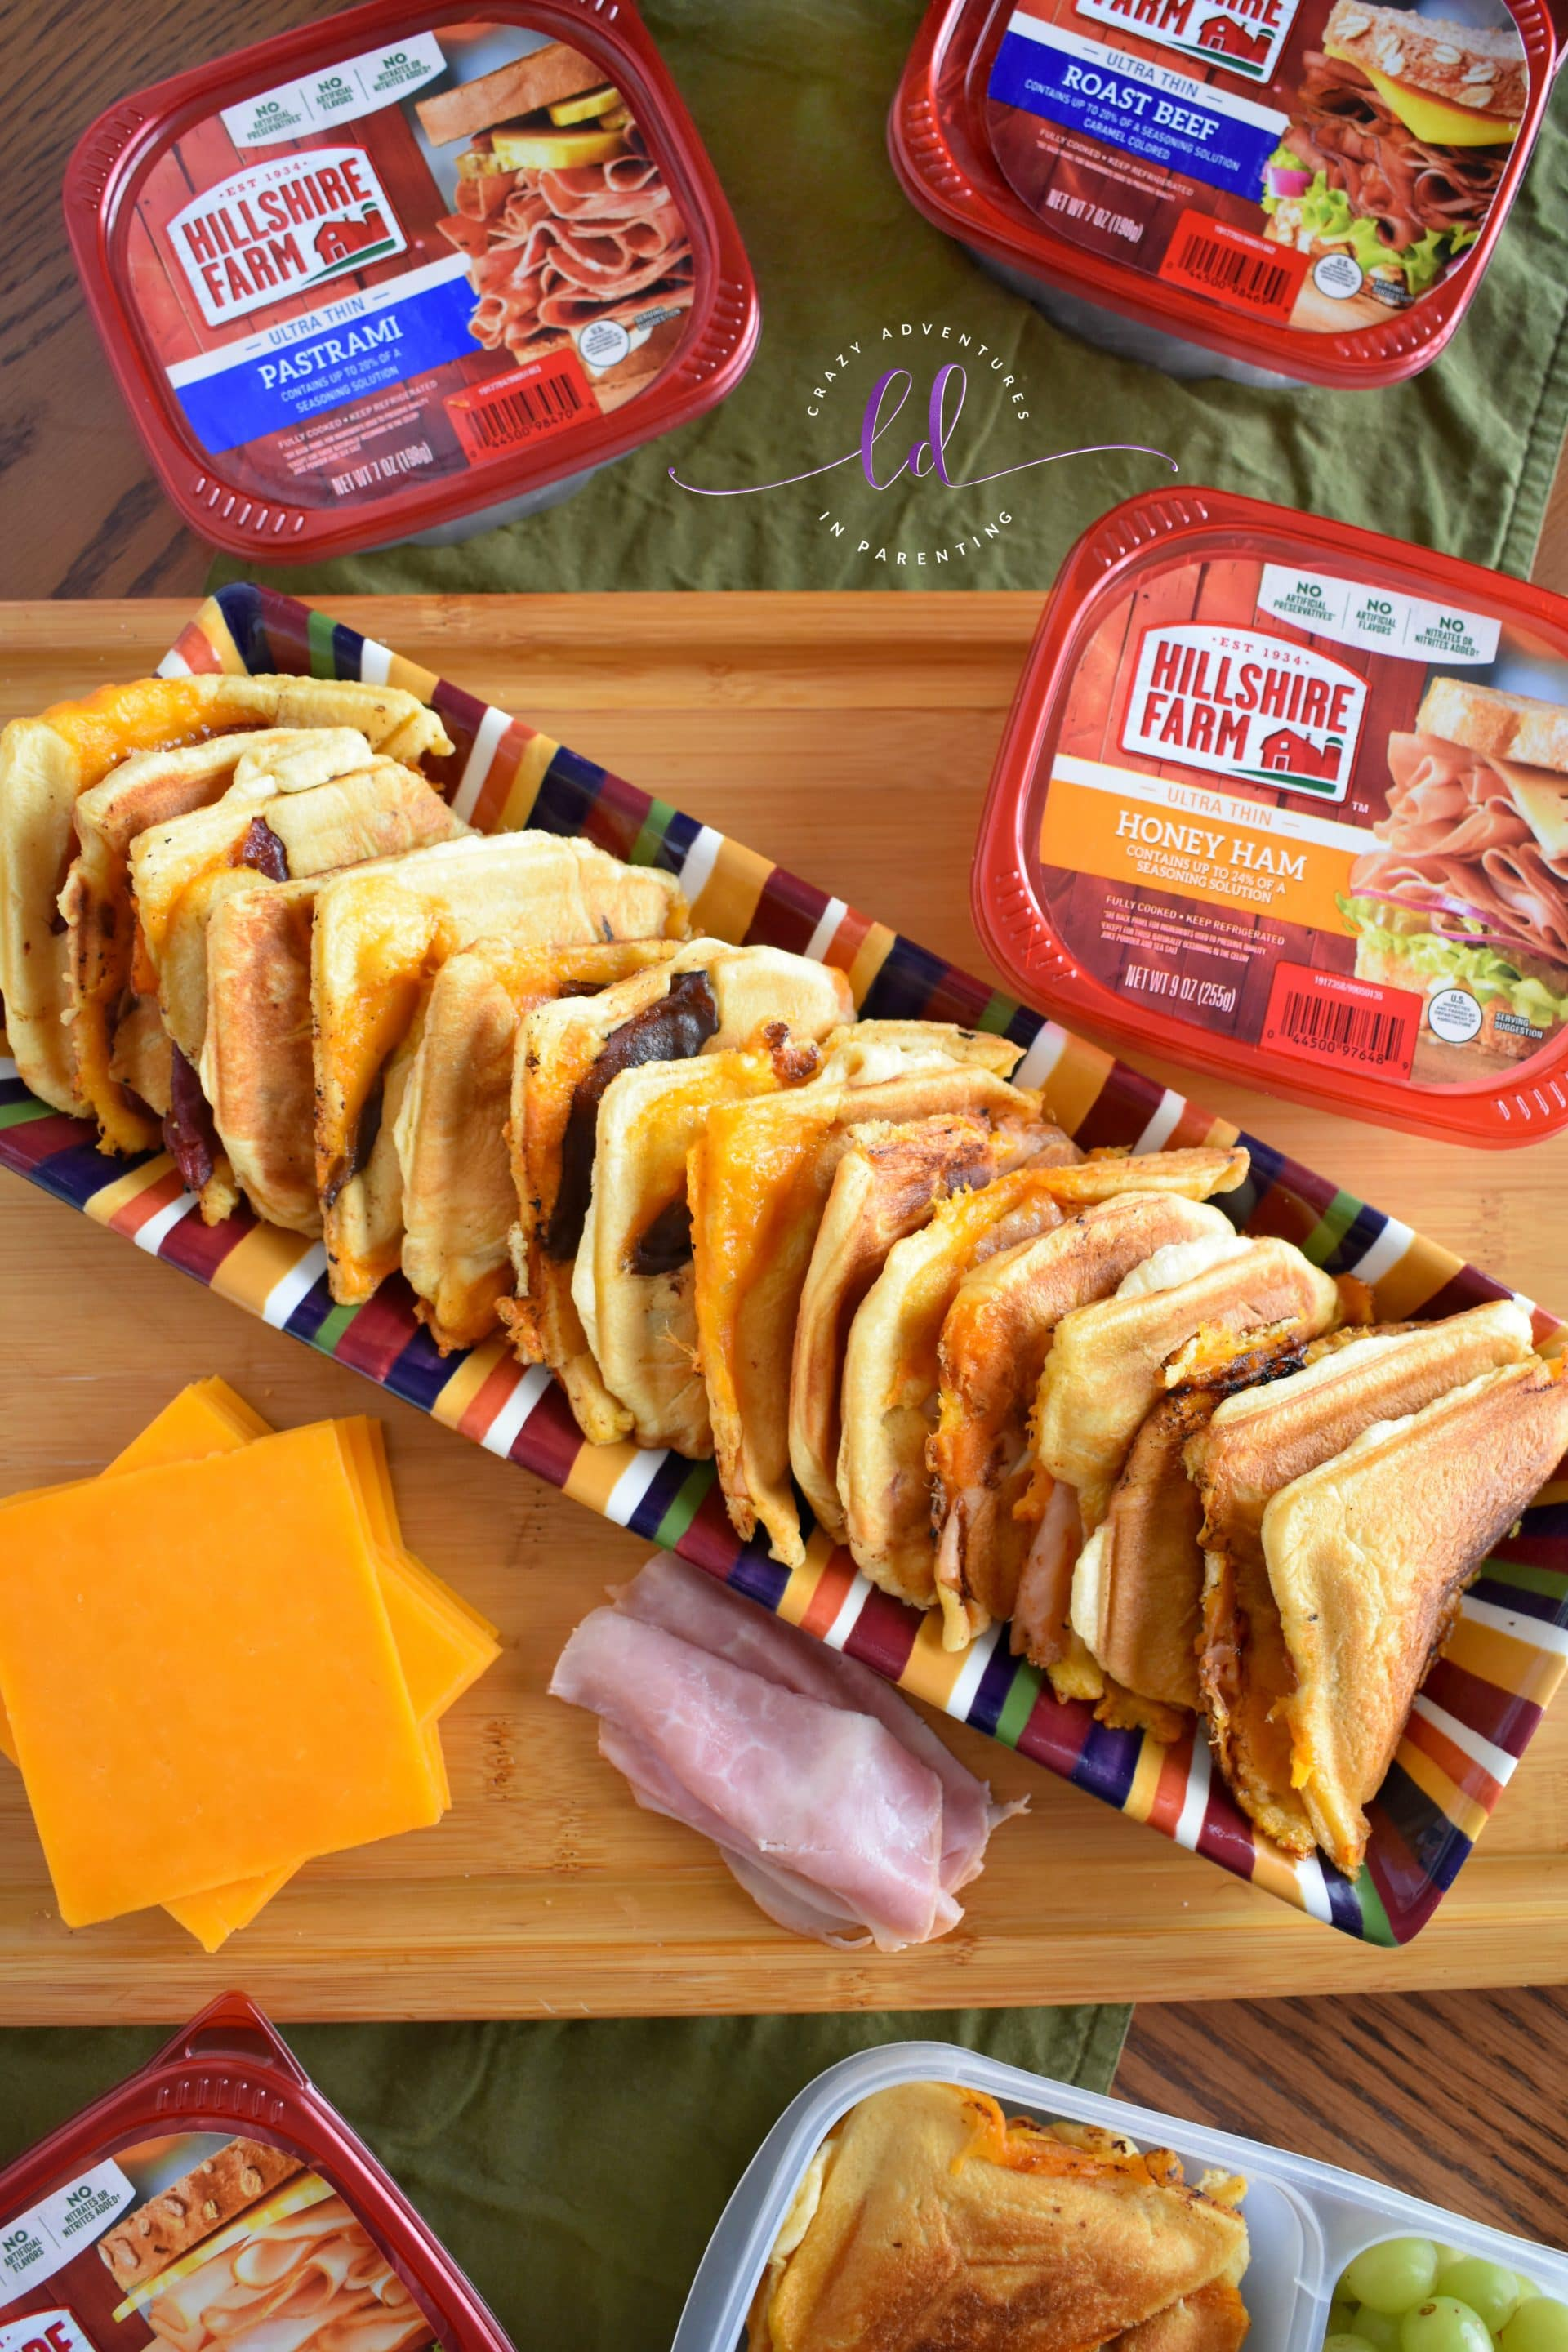 Hillshire Farms Crescent Roll Sandwich Maker Sandwiches